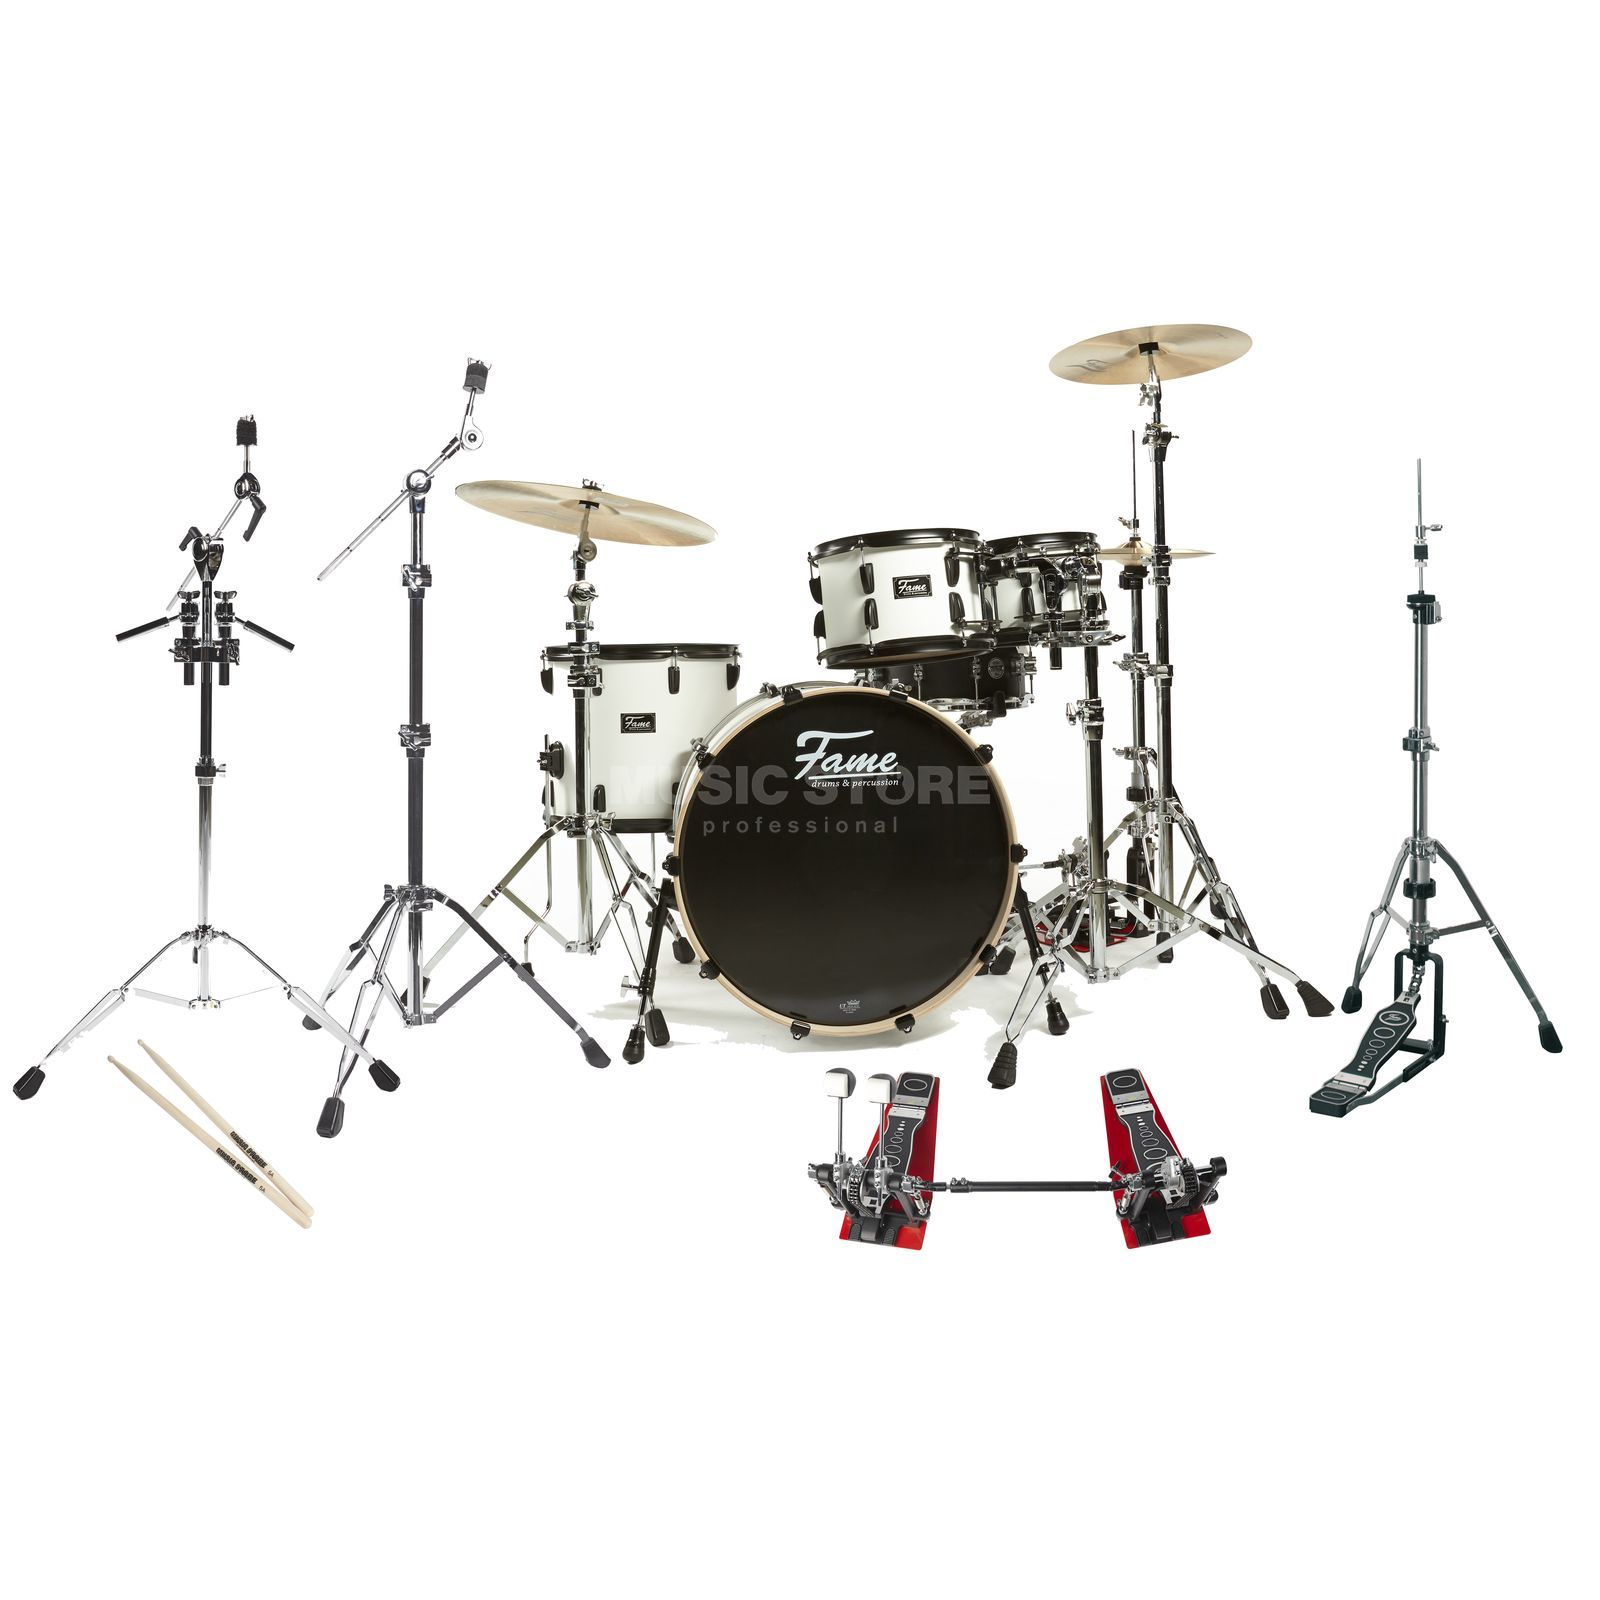 FAME Fire Studio 2 + Hardware - Set Produktbild